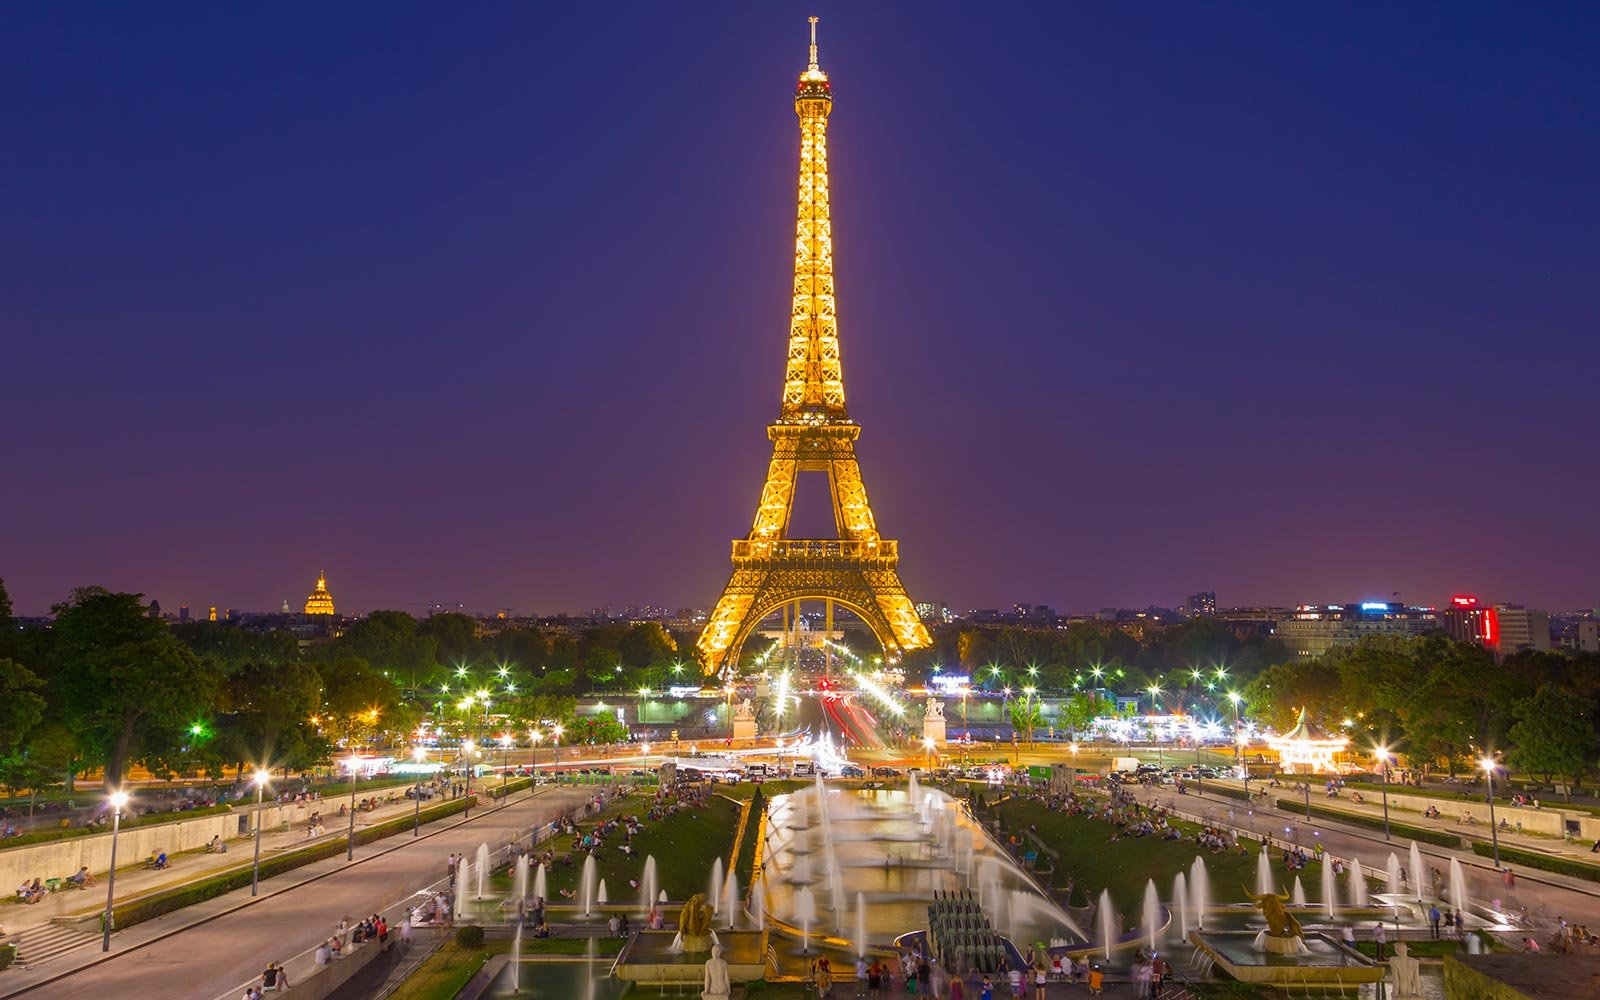 Eiffel Tower Landmark Paris France Trocadero View